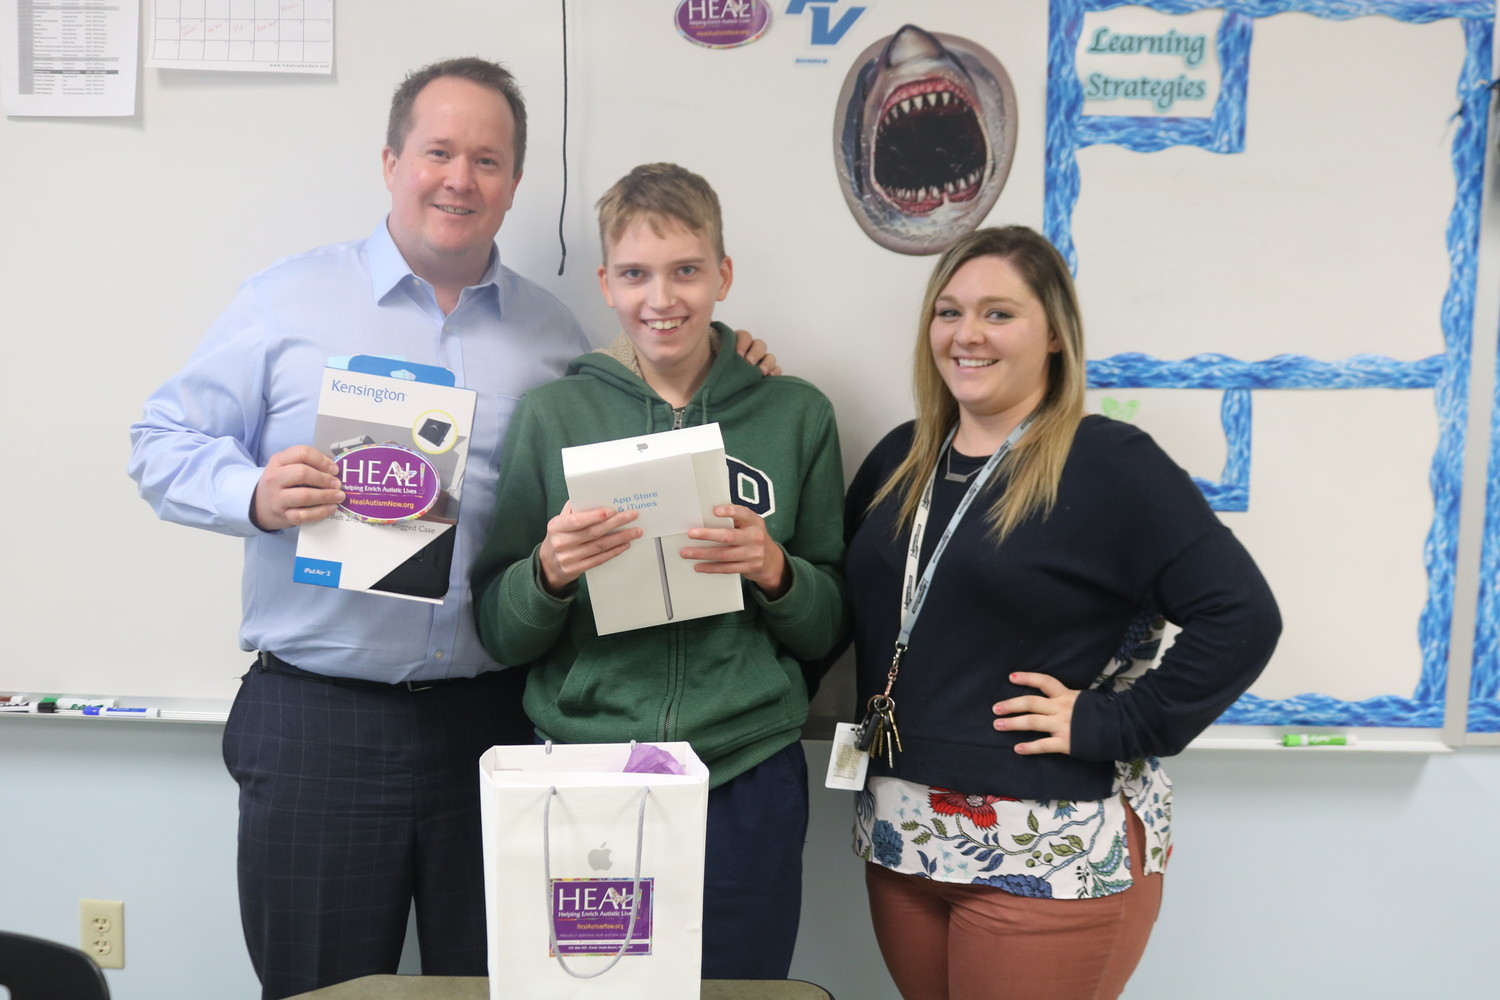 HEAL Foundation Executive Director Jason Gurka presents Ponte Vedra High School teacher Kaitlyn Goyette and student Owen Gee with an iPad, case and $25 iTunes gift card. The presentation was part of the nonprofit's iPads Helping Enrich Autistic Lives (iHEAL) initiative, which has gifted 400 iPads to local schools over the last four years.